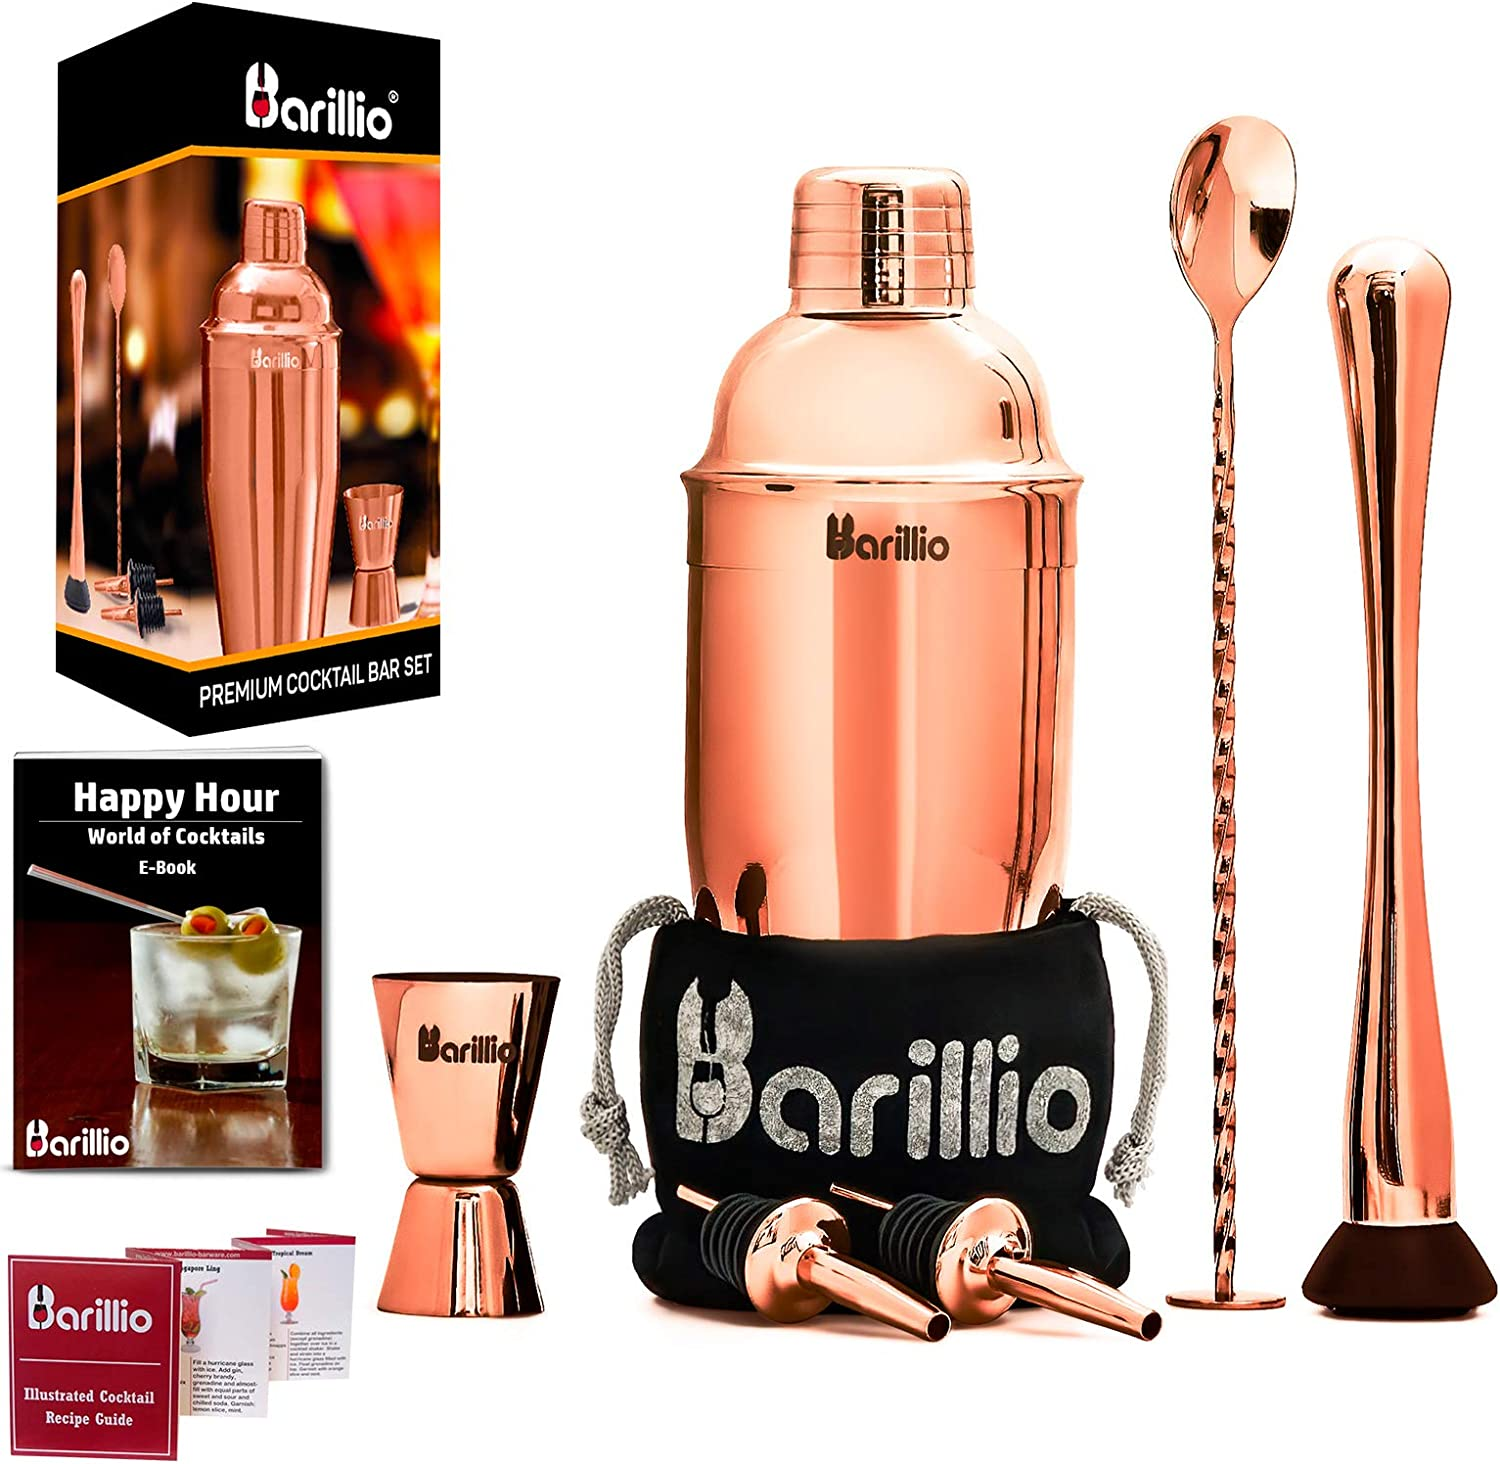 Rose Copper Cocktail Shaker Set Bartender Kit by BARILLIO: 24 oz Stainless Steel Martini Mixer, Muddler, Mixing Spoon, jigger, 2 liquor pourers, Velvet Bag Recipes Booklet & eBook